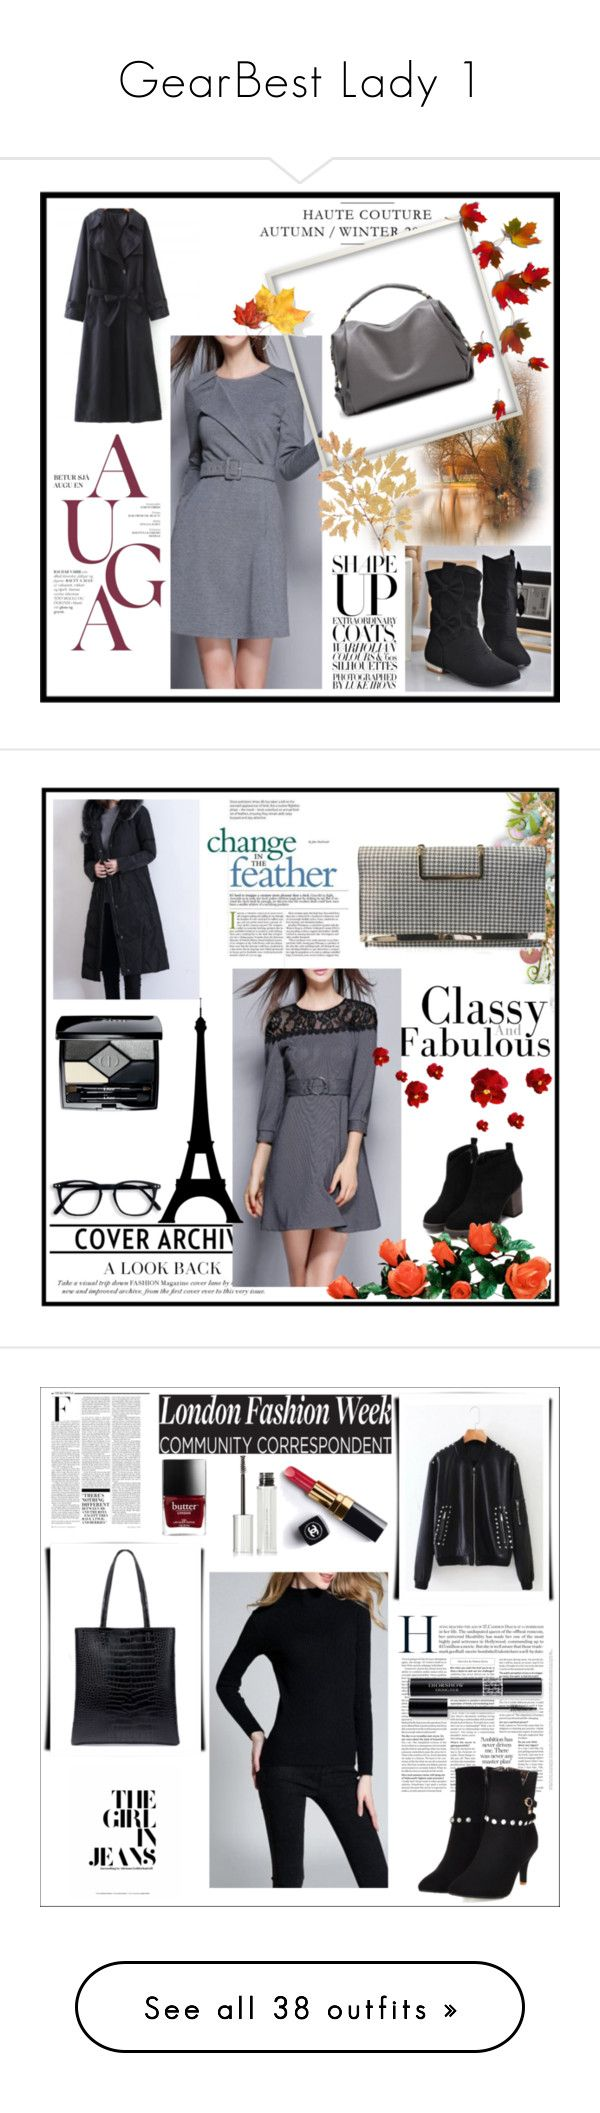 """""""GearBest Lady 1"""" by m-sisic ❤ liked on Polyvore featuring Christian Dior, Nicki Minaj, Chanel, Givenchy, Viktor & Rolf, lkid, Yves Saint Laurent, Vintage Print Gallery, Rosanna and Cyan Design"""